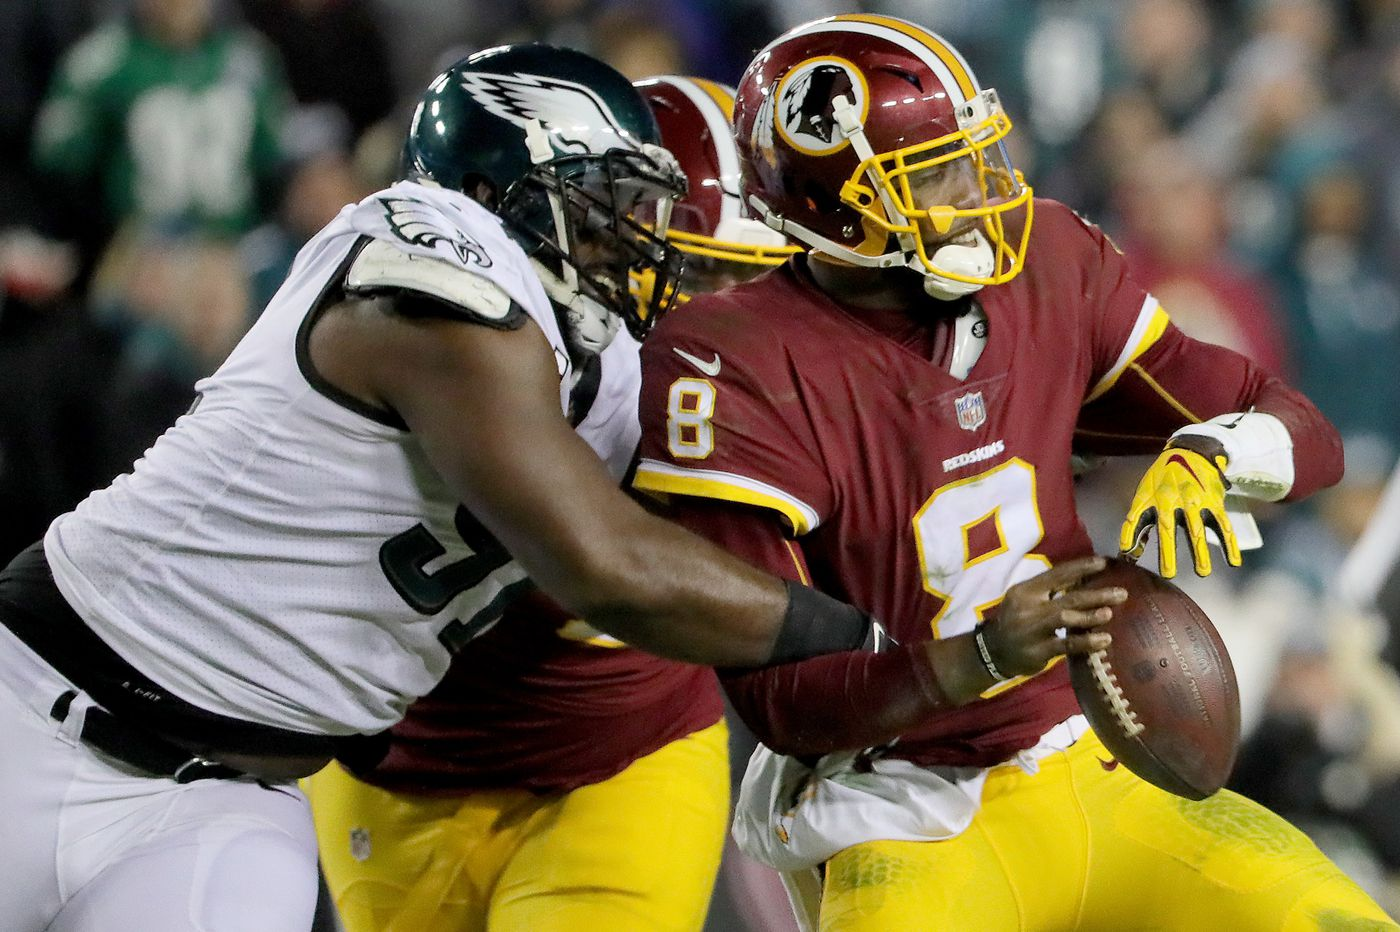 Five reasons the Eagles beat the Redskins